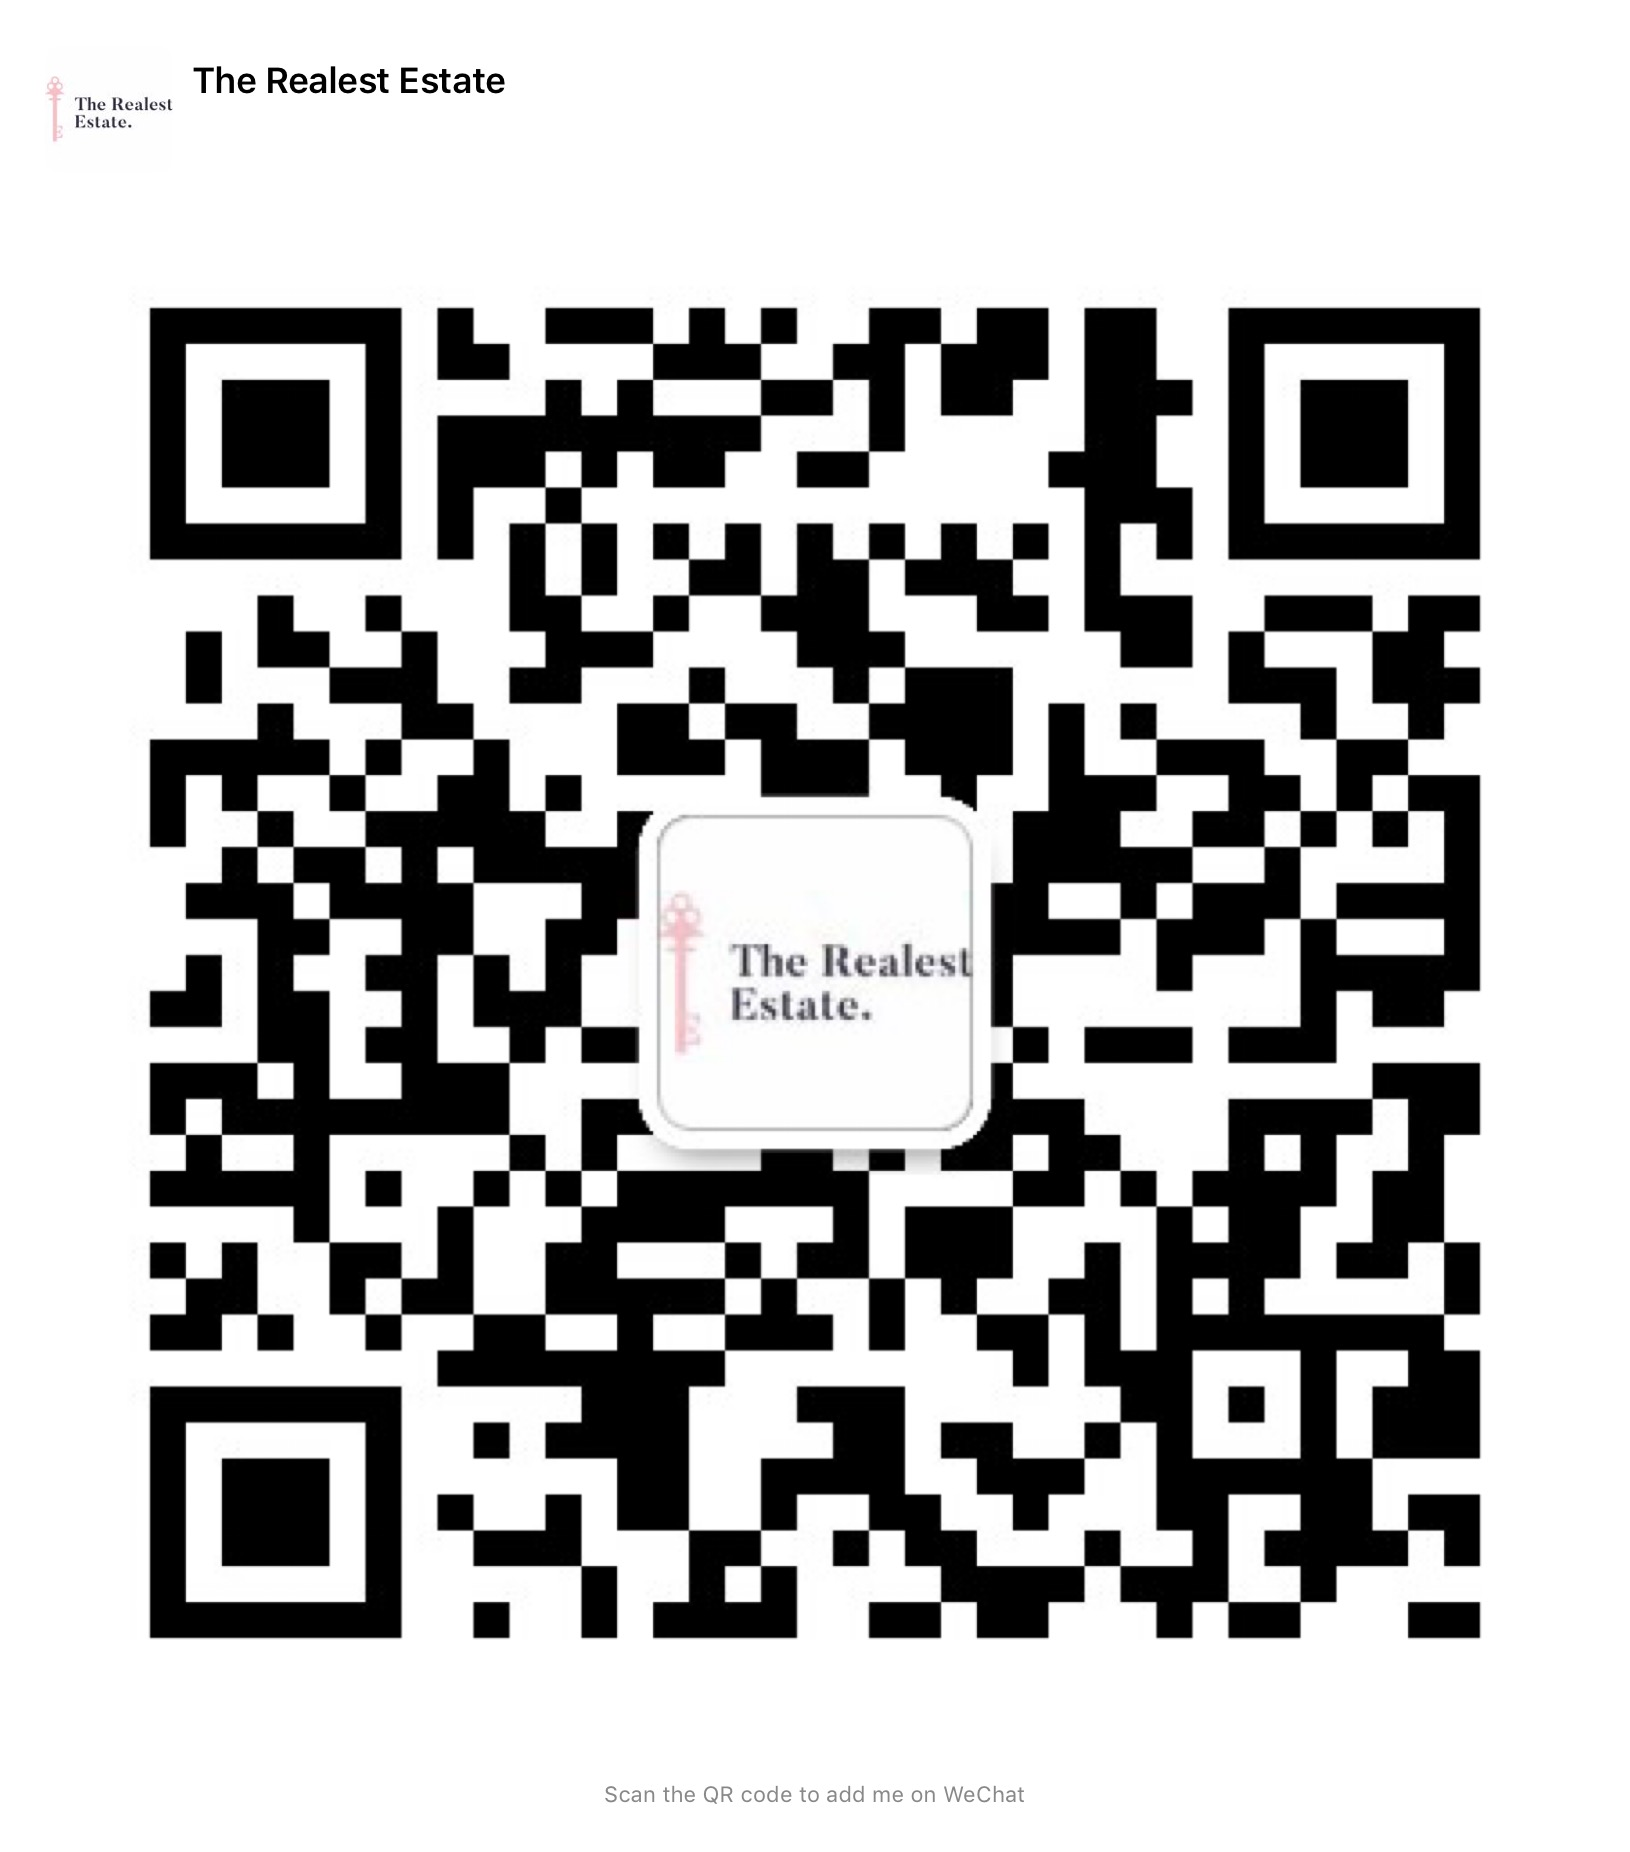 wechat-therealestestate